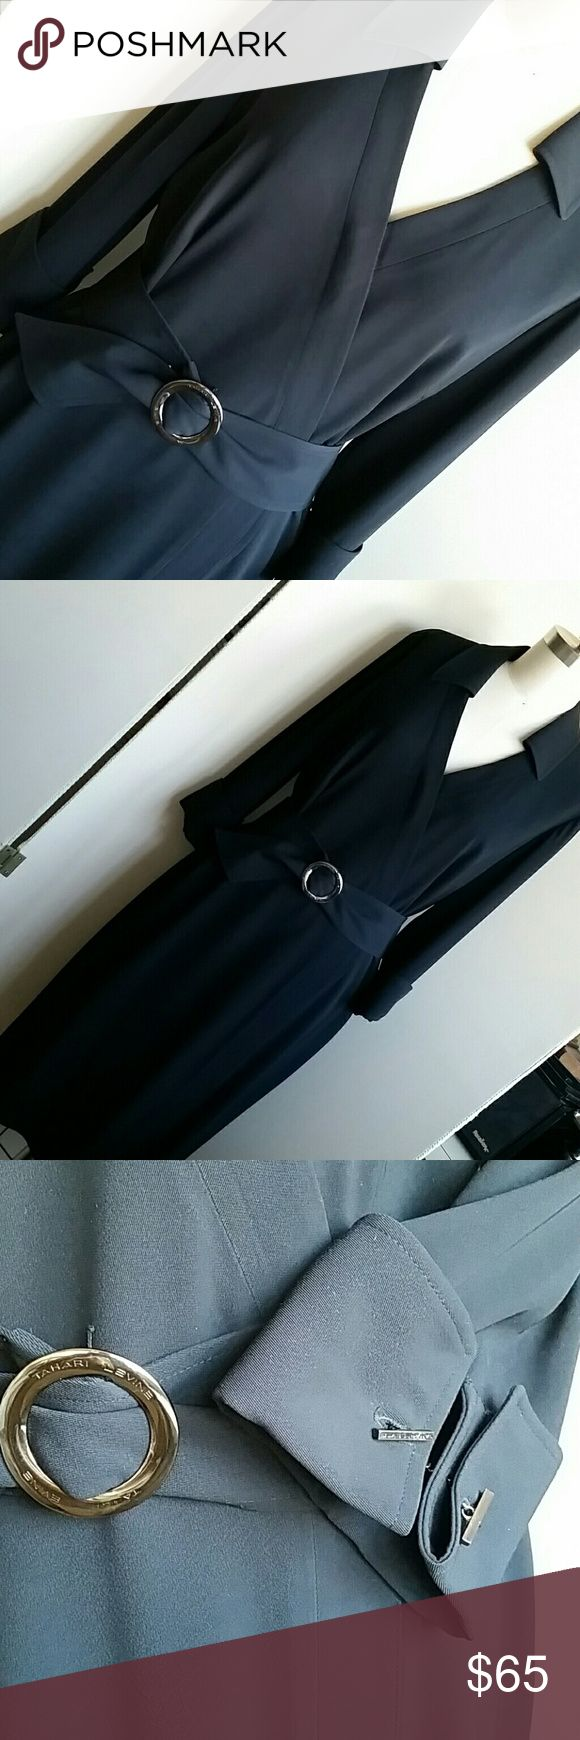 "👣NL Tahari Garbadine Shirt Dress Black Size 10 Beautiful and excellent condition. 40.5"" long, sleeve length approximately 18"" with cuff links and matching gun metal belt buckle. Can be worn with or without belt. tahari  Dresses Midi"